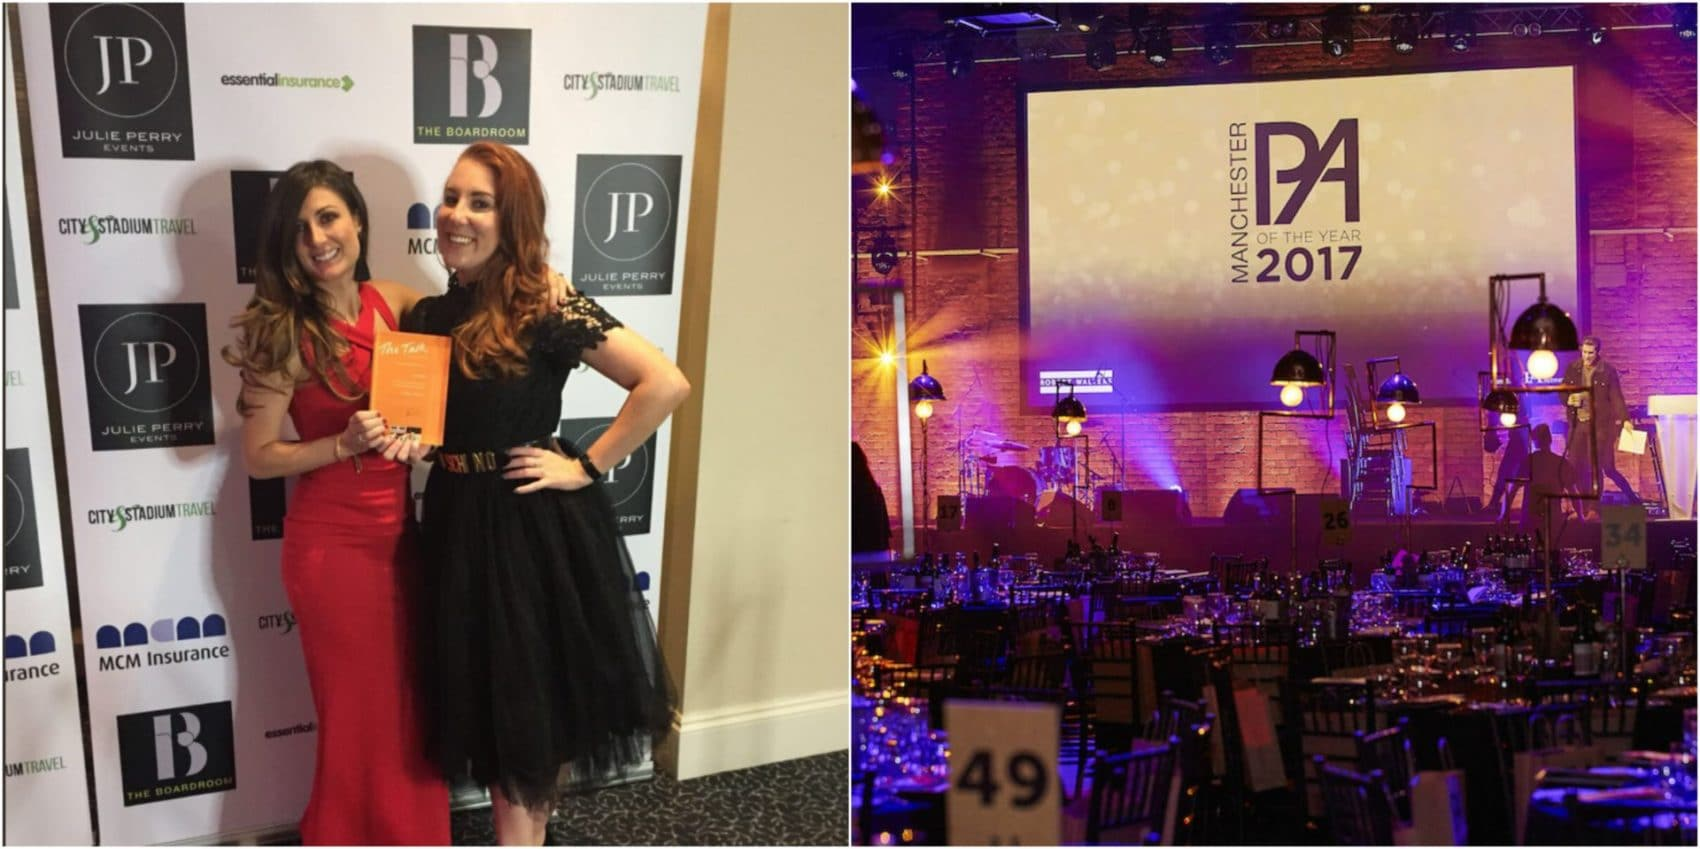 Make Events | Event Management Company Manchester | Holly and Charlotte